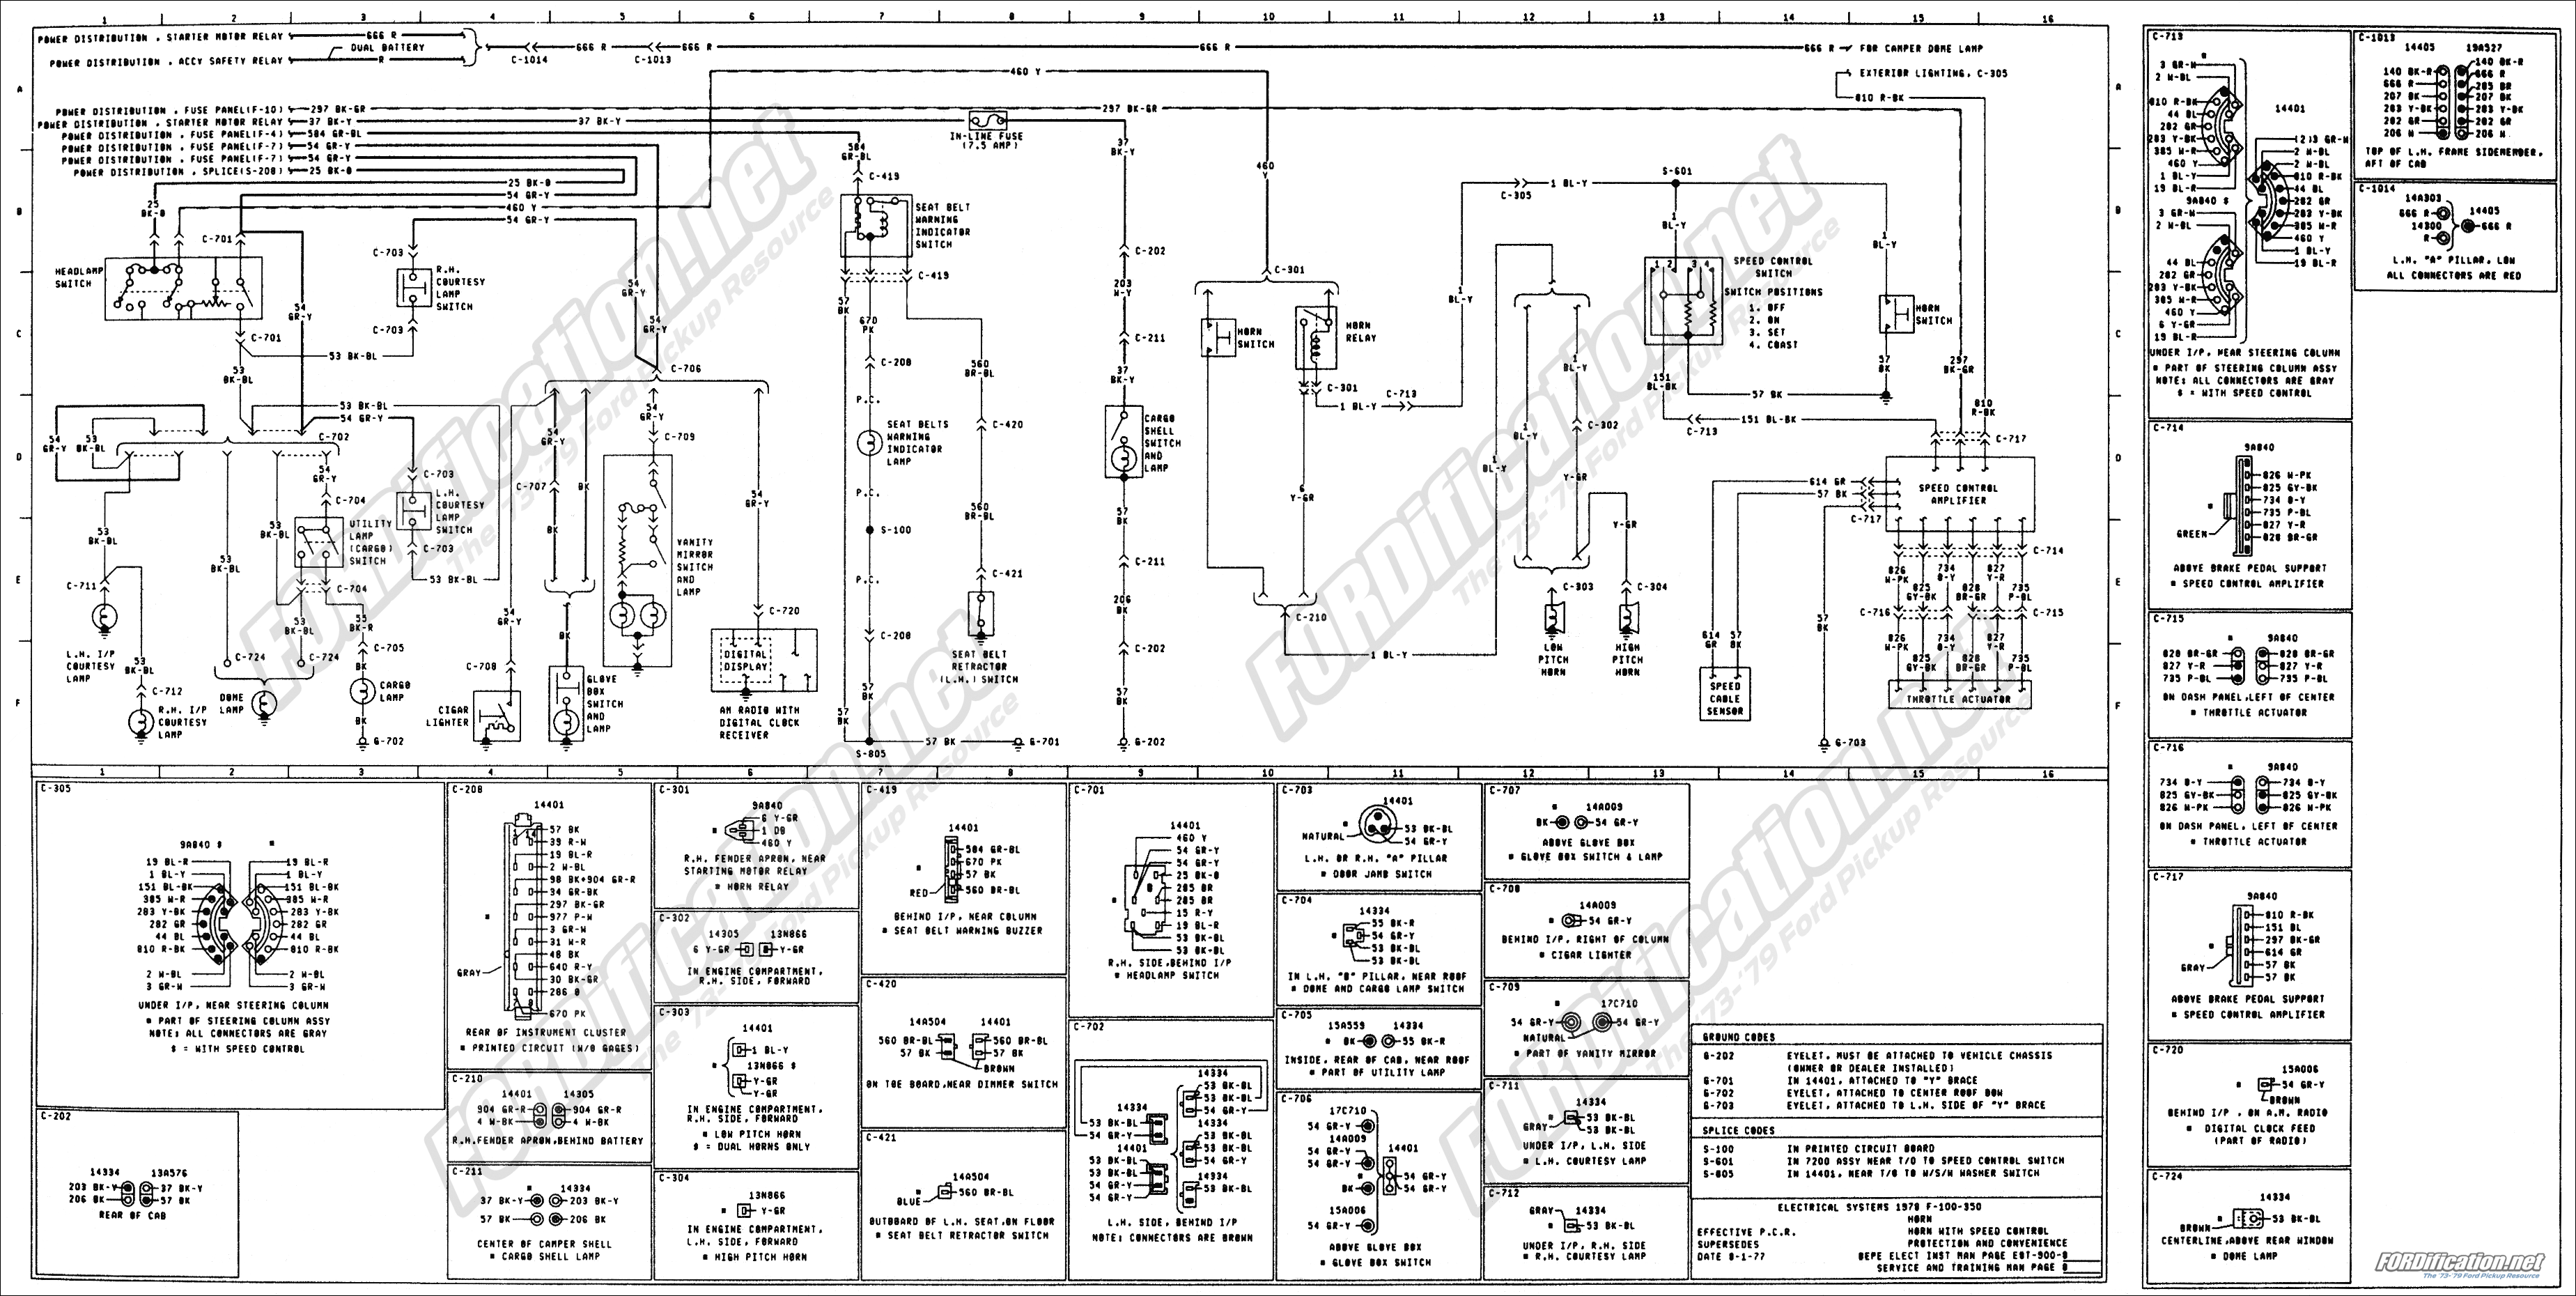 custom wiring diagram f on 78 bronco wiring diagram, f150 starter  diagram,